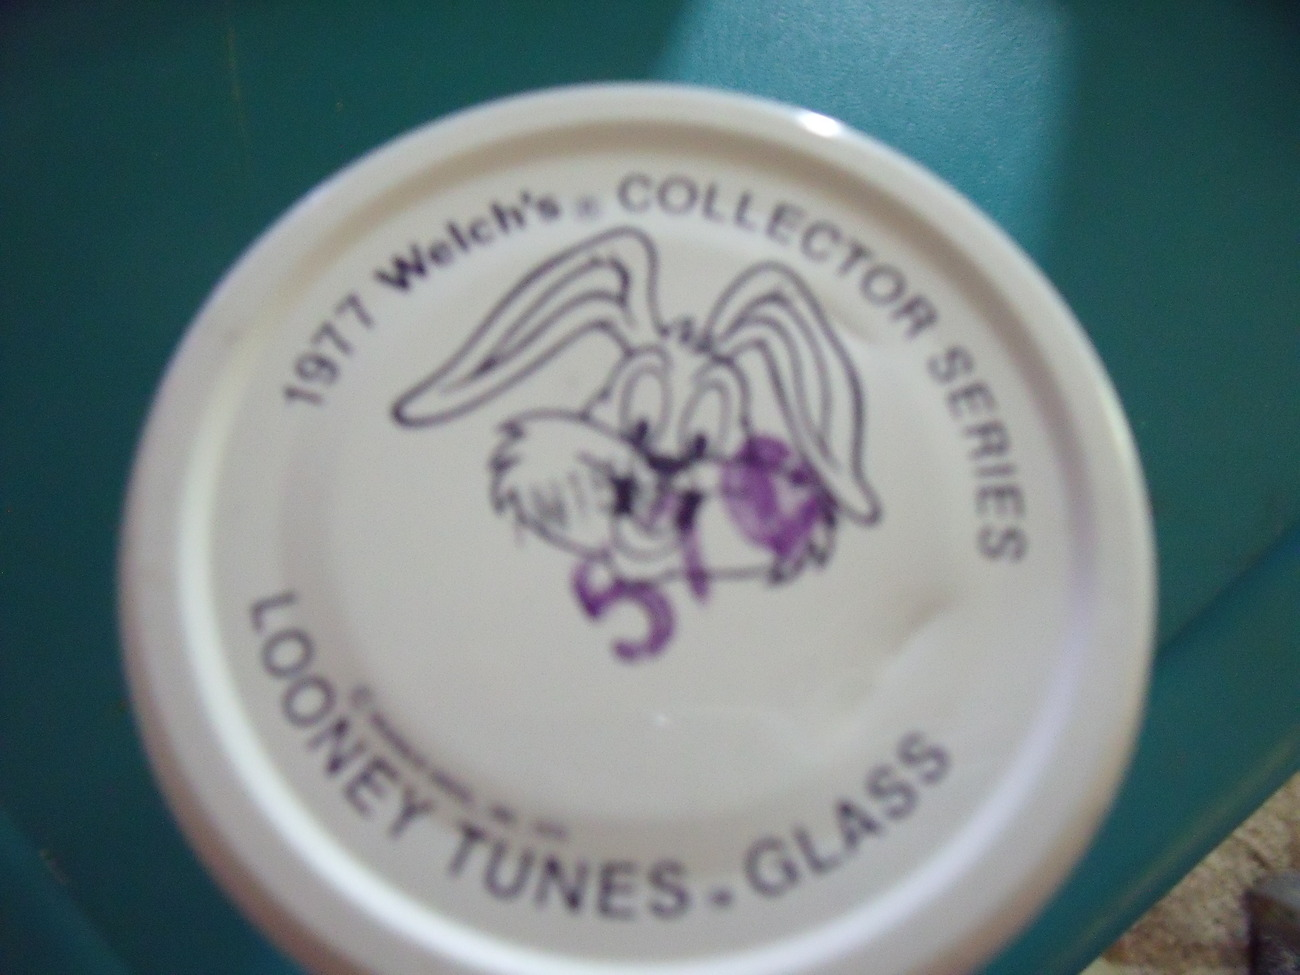 Daffy Duck 1977 Welch's Glass with original label and lid